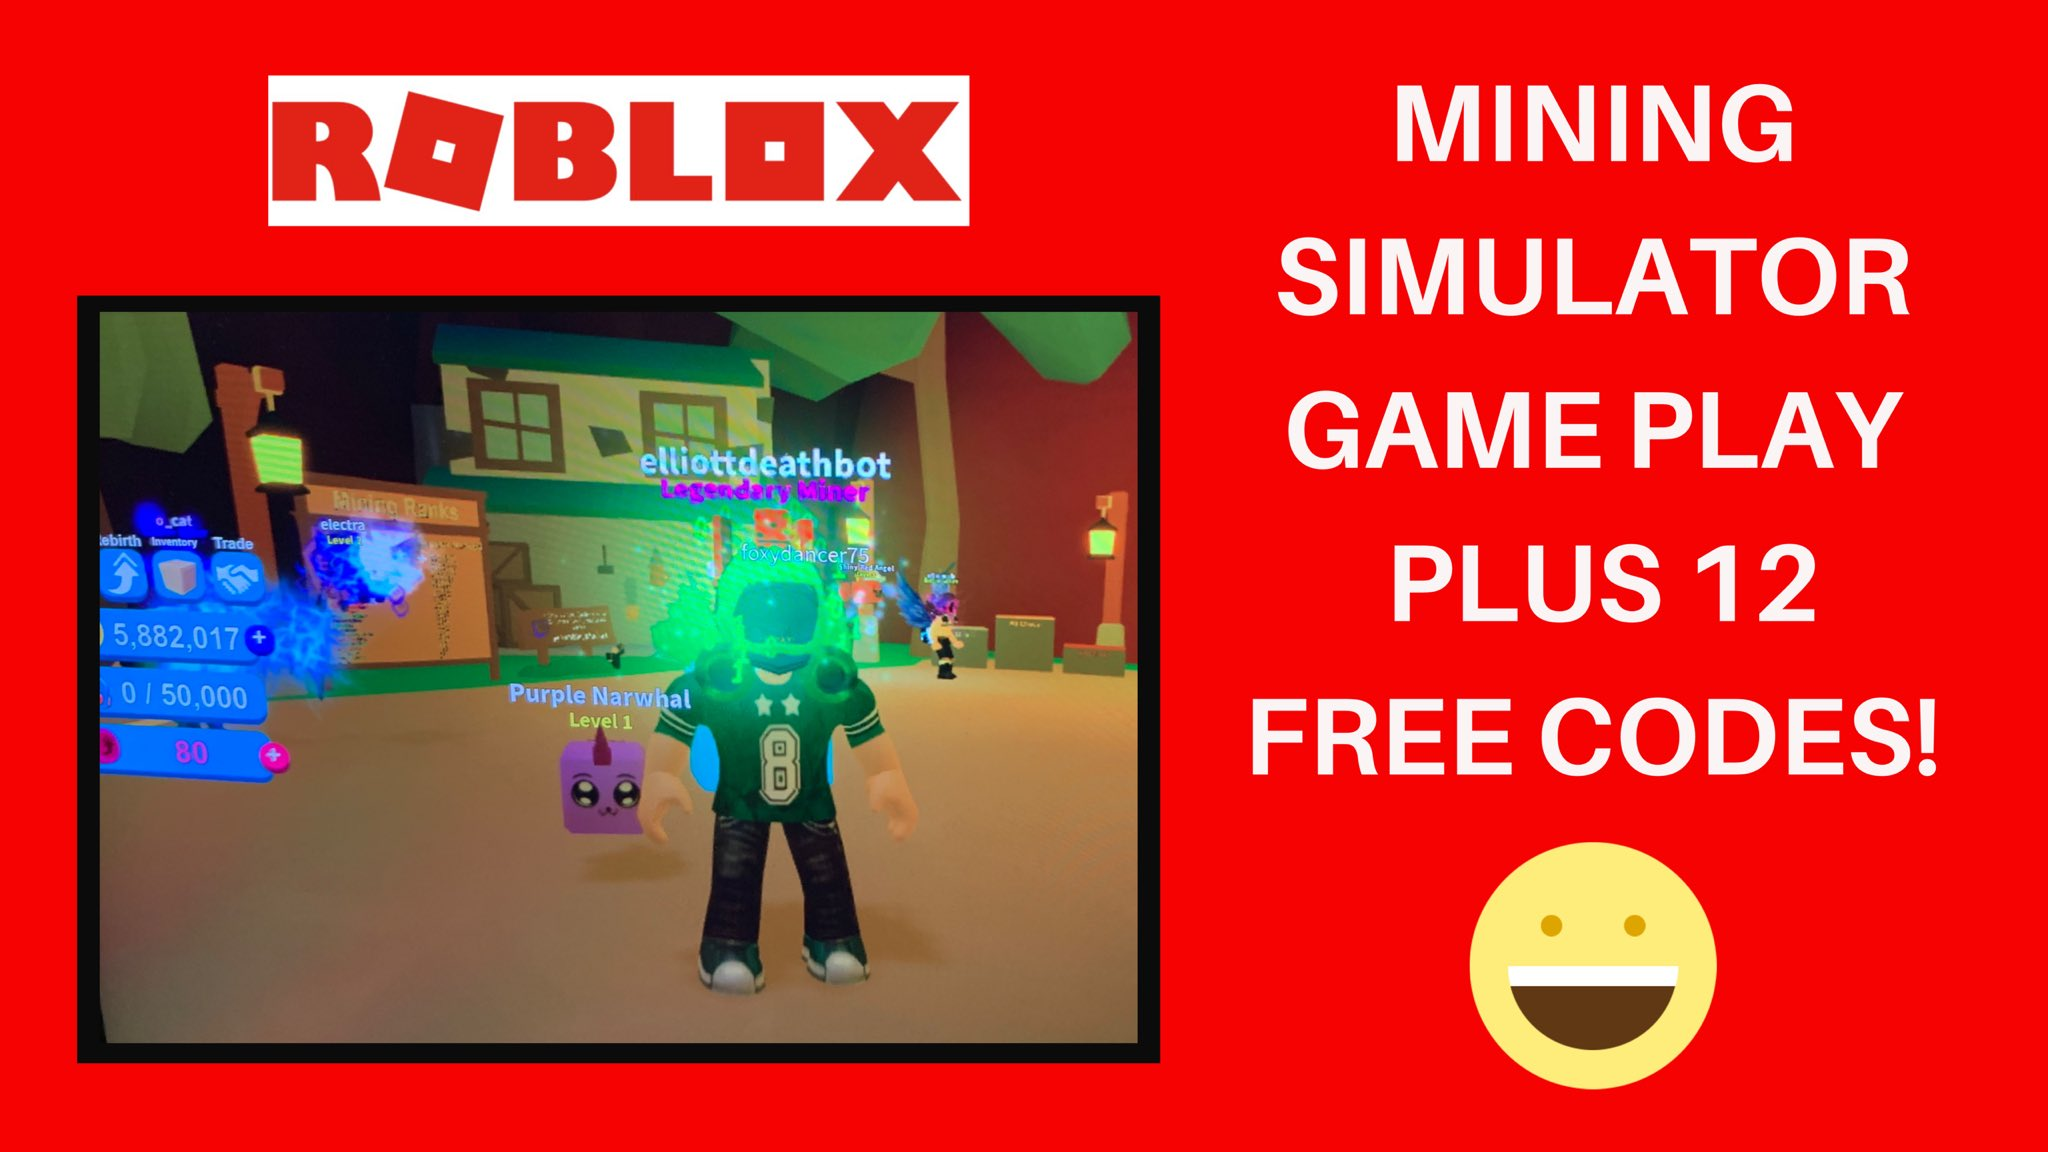 All Roblox Codes For Mining Simulator Deathbotbrothers On Twitter Roblox Mining Simulator Codes And Game Play 12 New Codes September 2019 Https T Co Qwxyvllrdr Via Youtube Roblox Robloxcodes Roboxfreecodes Miningsimulator Robloxminingsimulator Miningsimulatorcodes Https T